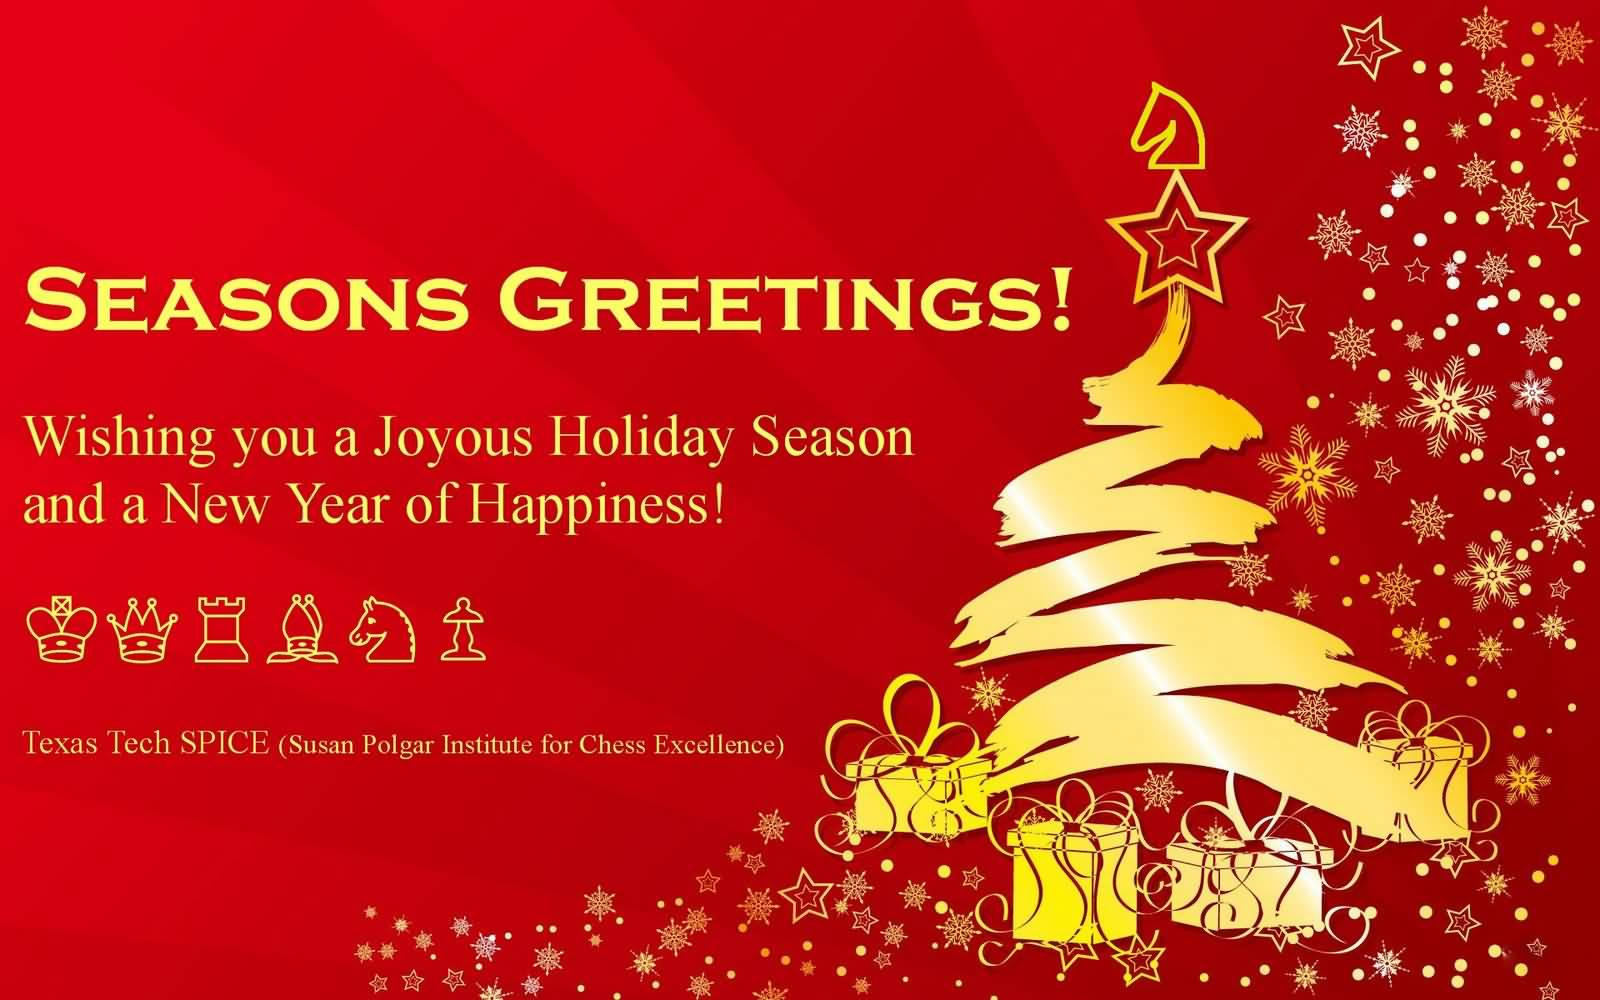 25 beautiful seasons greeting cards images seasons greetings wishing you a joyous holiday season and a new year of happiness m4hsunfo